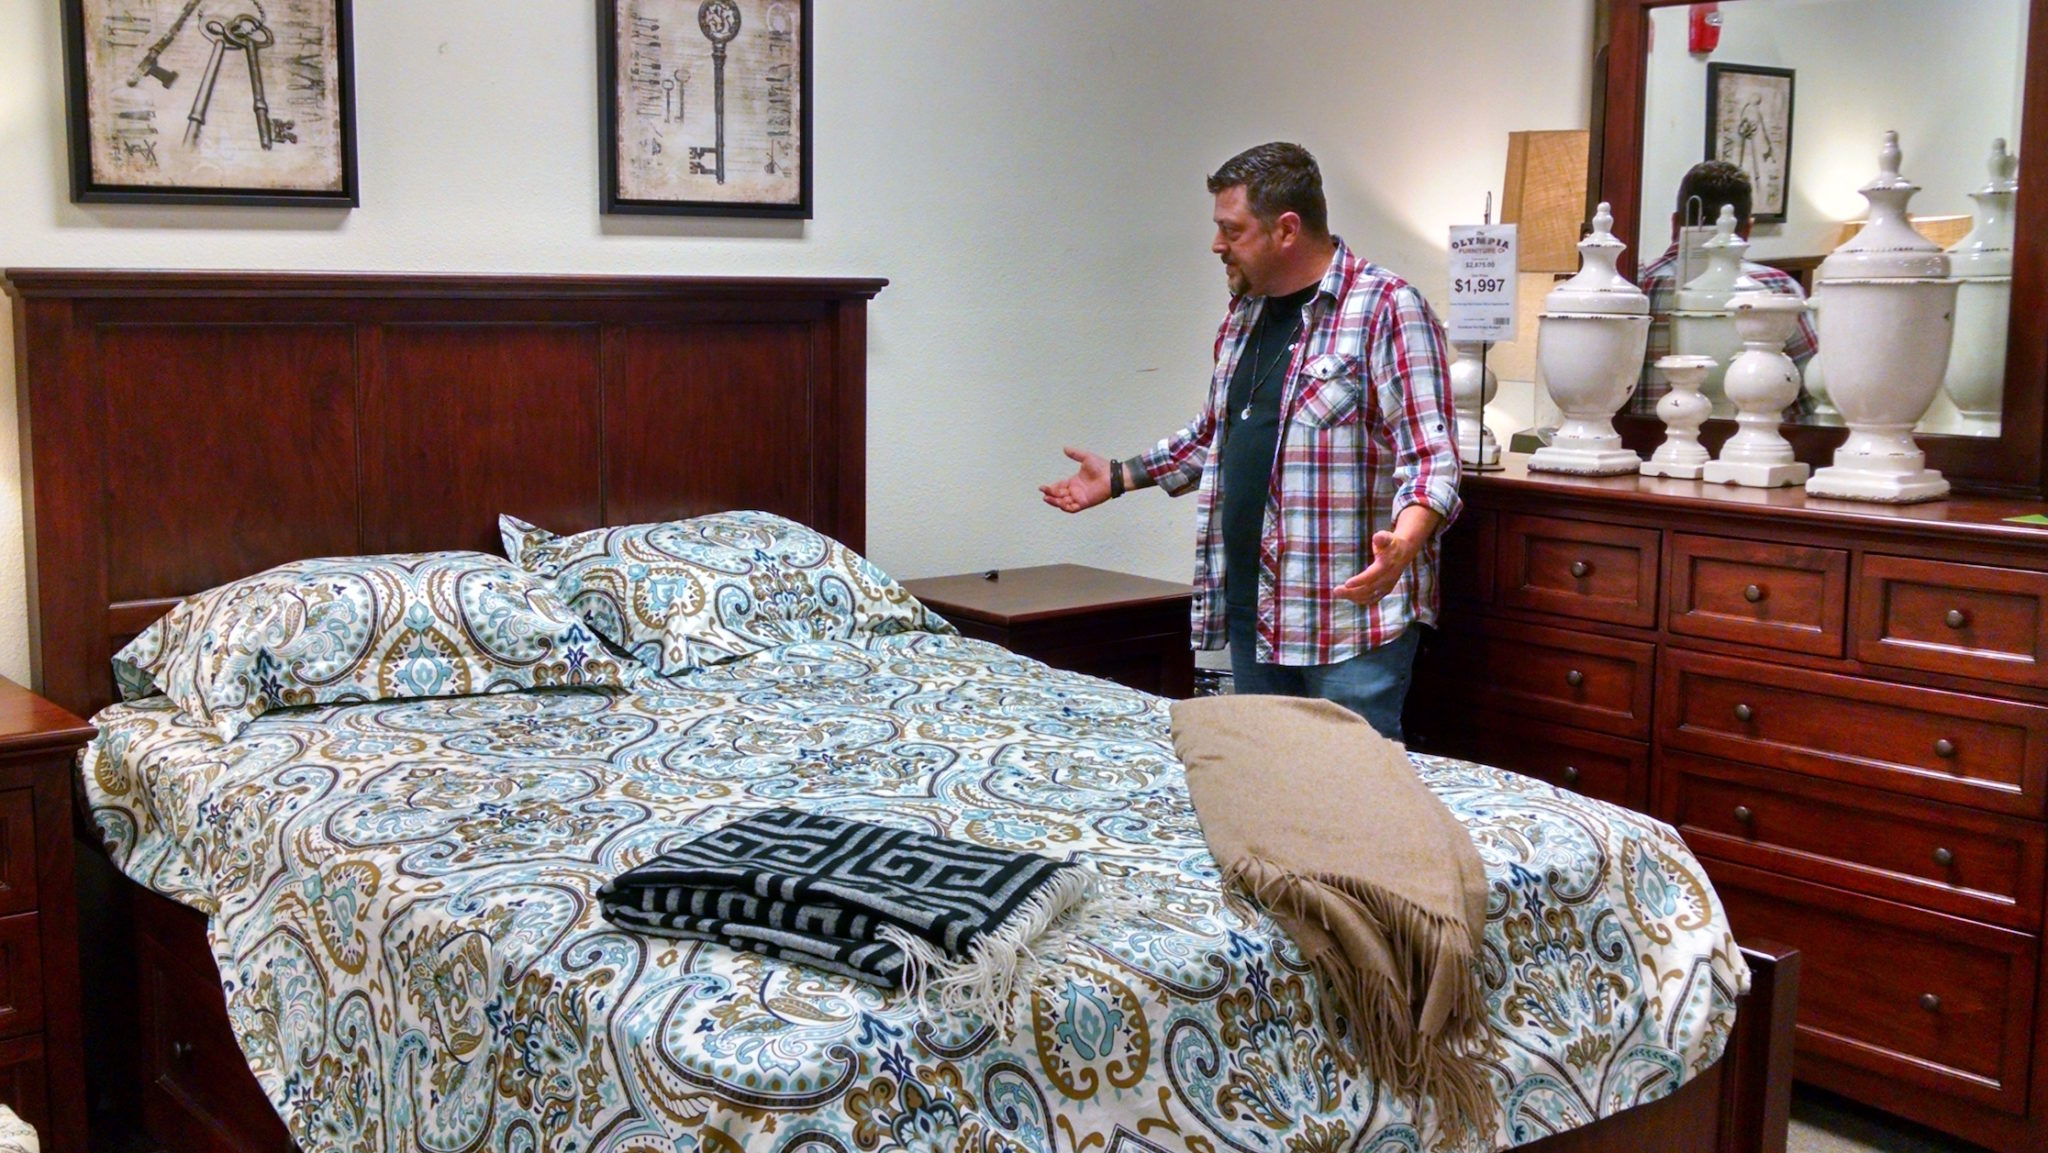 Incroyable Questions About Mattresses, Bedroom Sets Or Anything Else? Just Ask Eddie.  Photo Credit